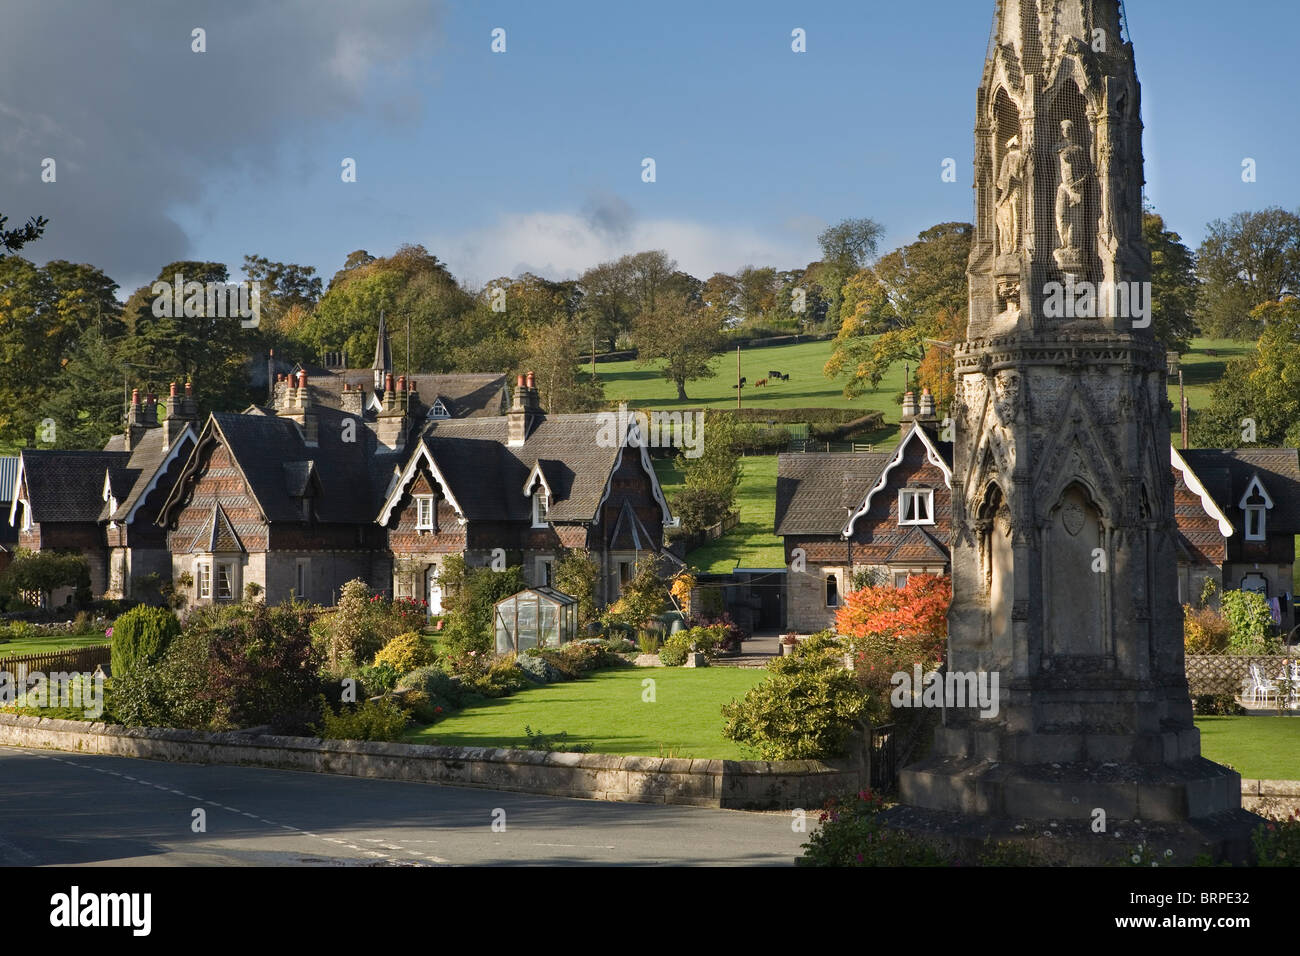 Cottages and memorial cross in Ilam, Staffordshire, Peak District National Park, England, UK - Stock Image